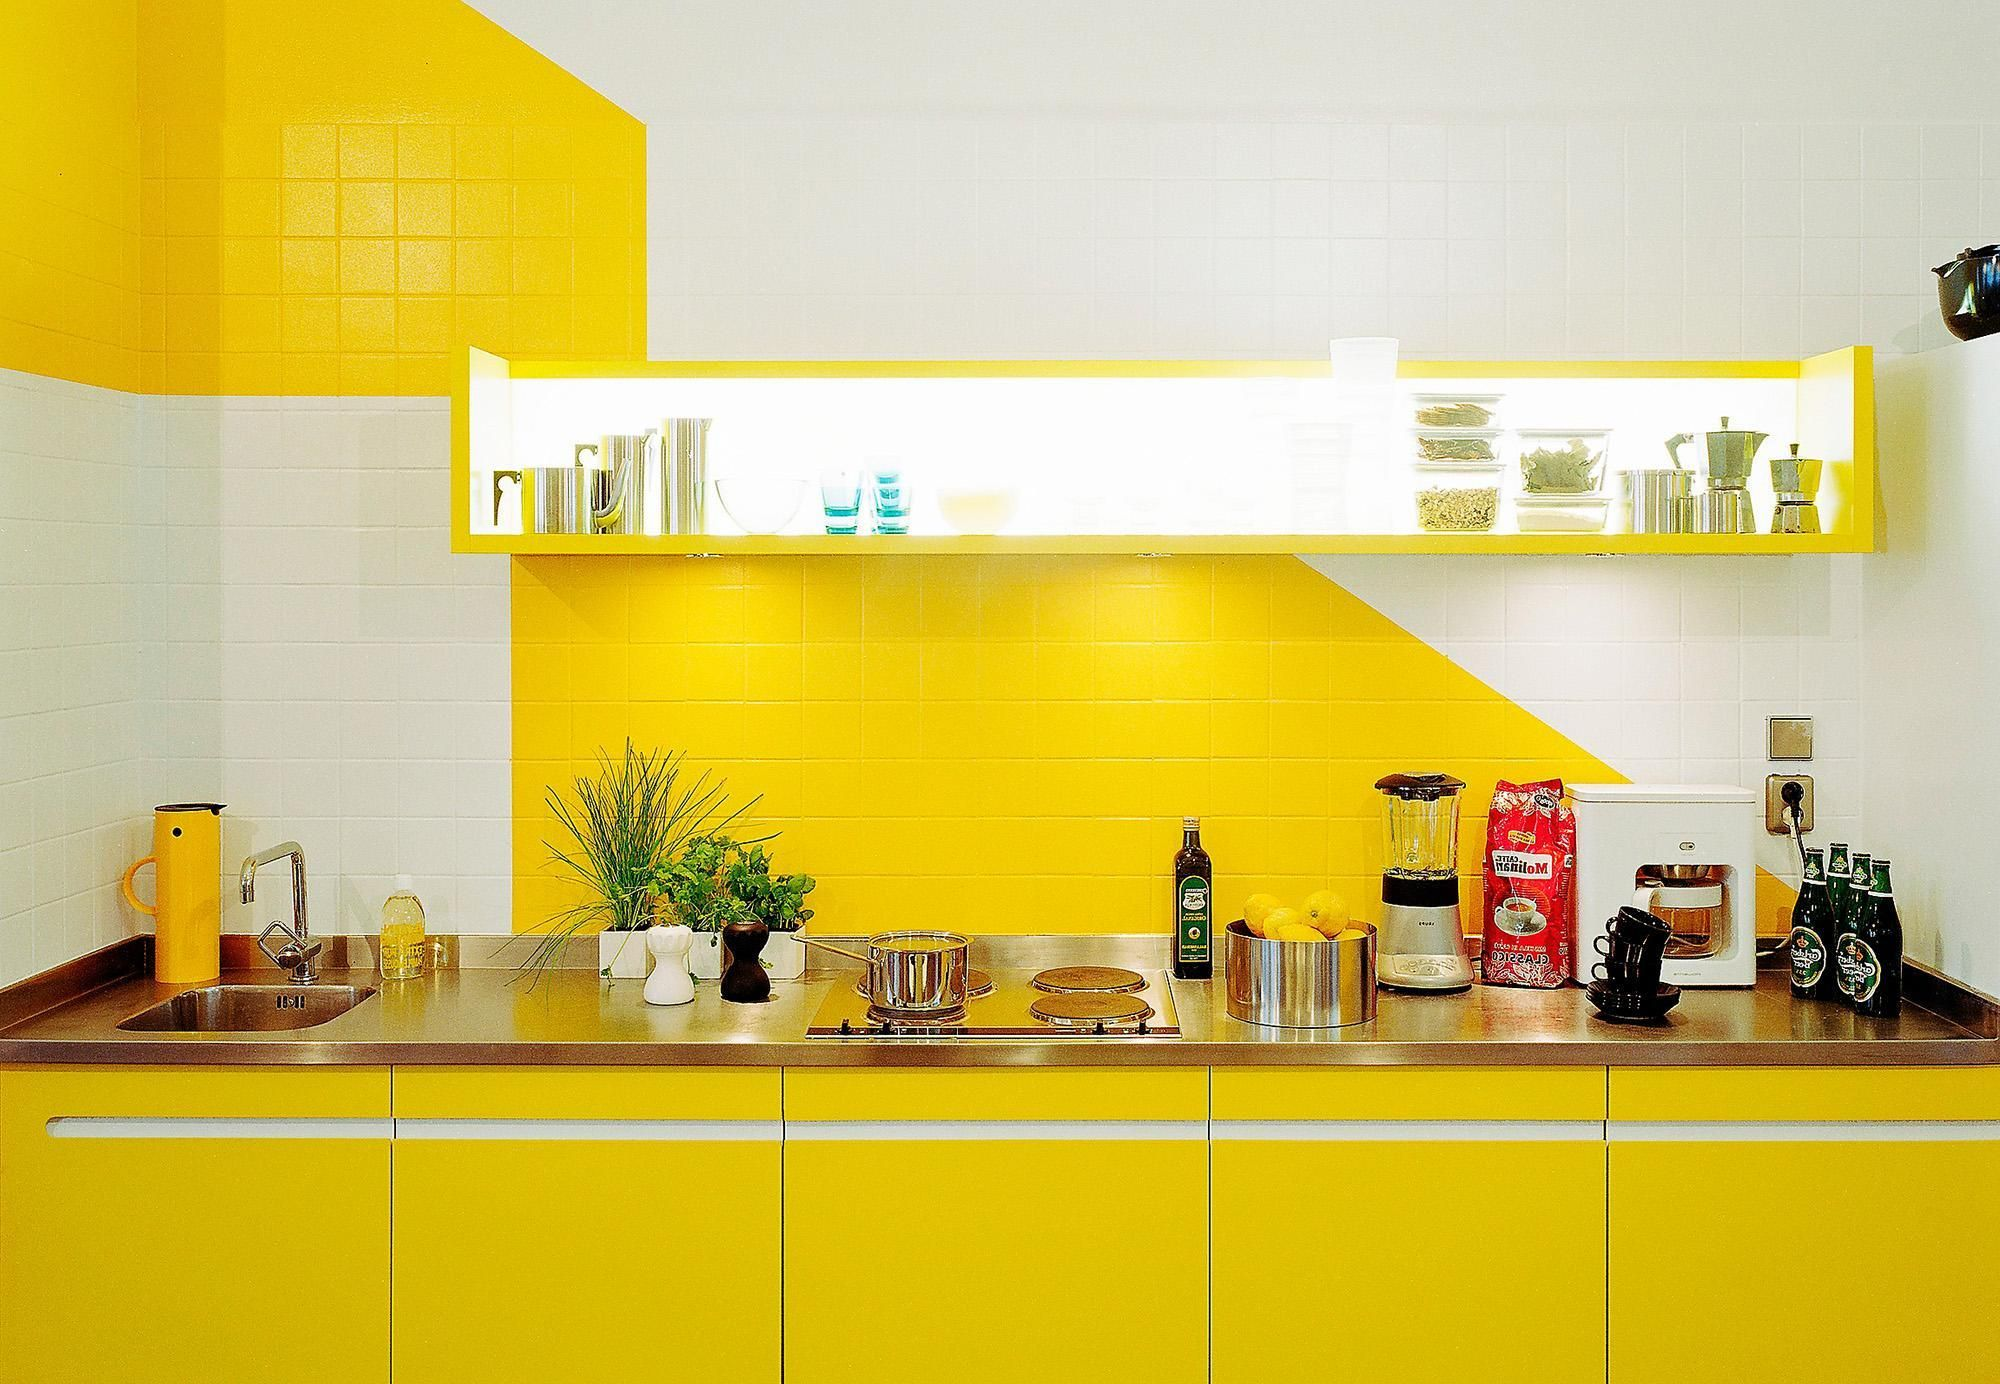 Kitchen Design Wall Colors bright kitchen color ideas | bright kitchen ideas with yellow